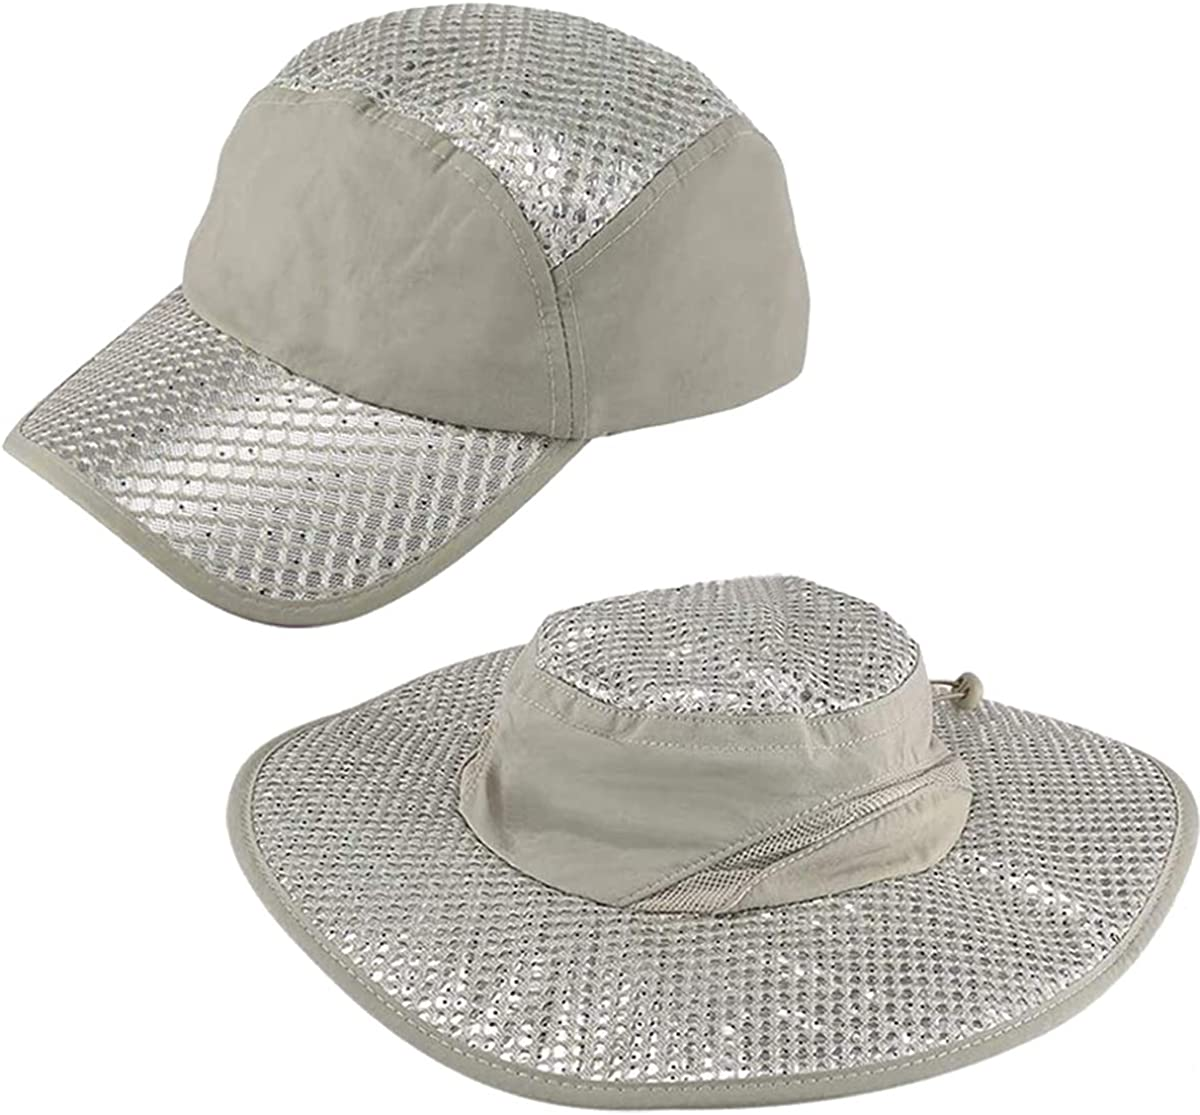 Sunstroke-Prevented Cooling Hat Anti-UV Sunstroke-Prevented Cooling Hat for Hiking Hunting Camping Outdoor